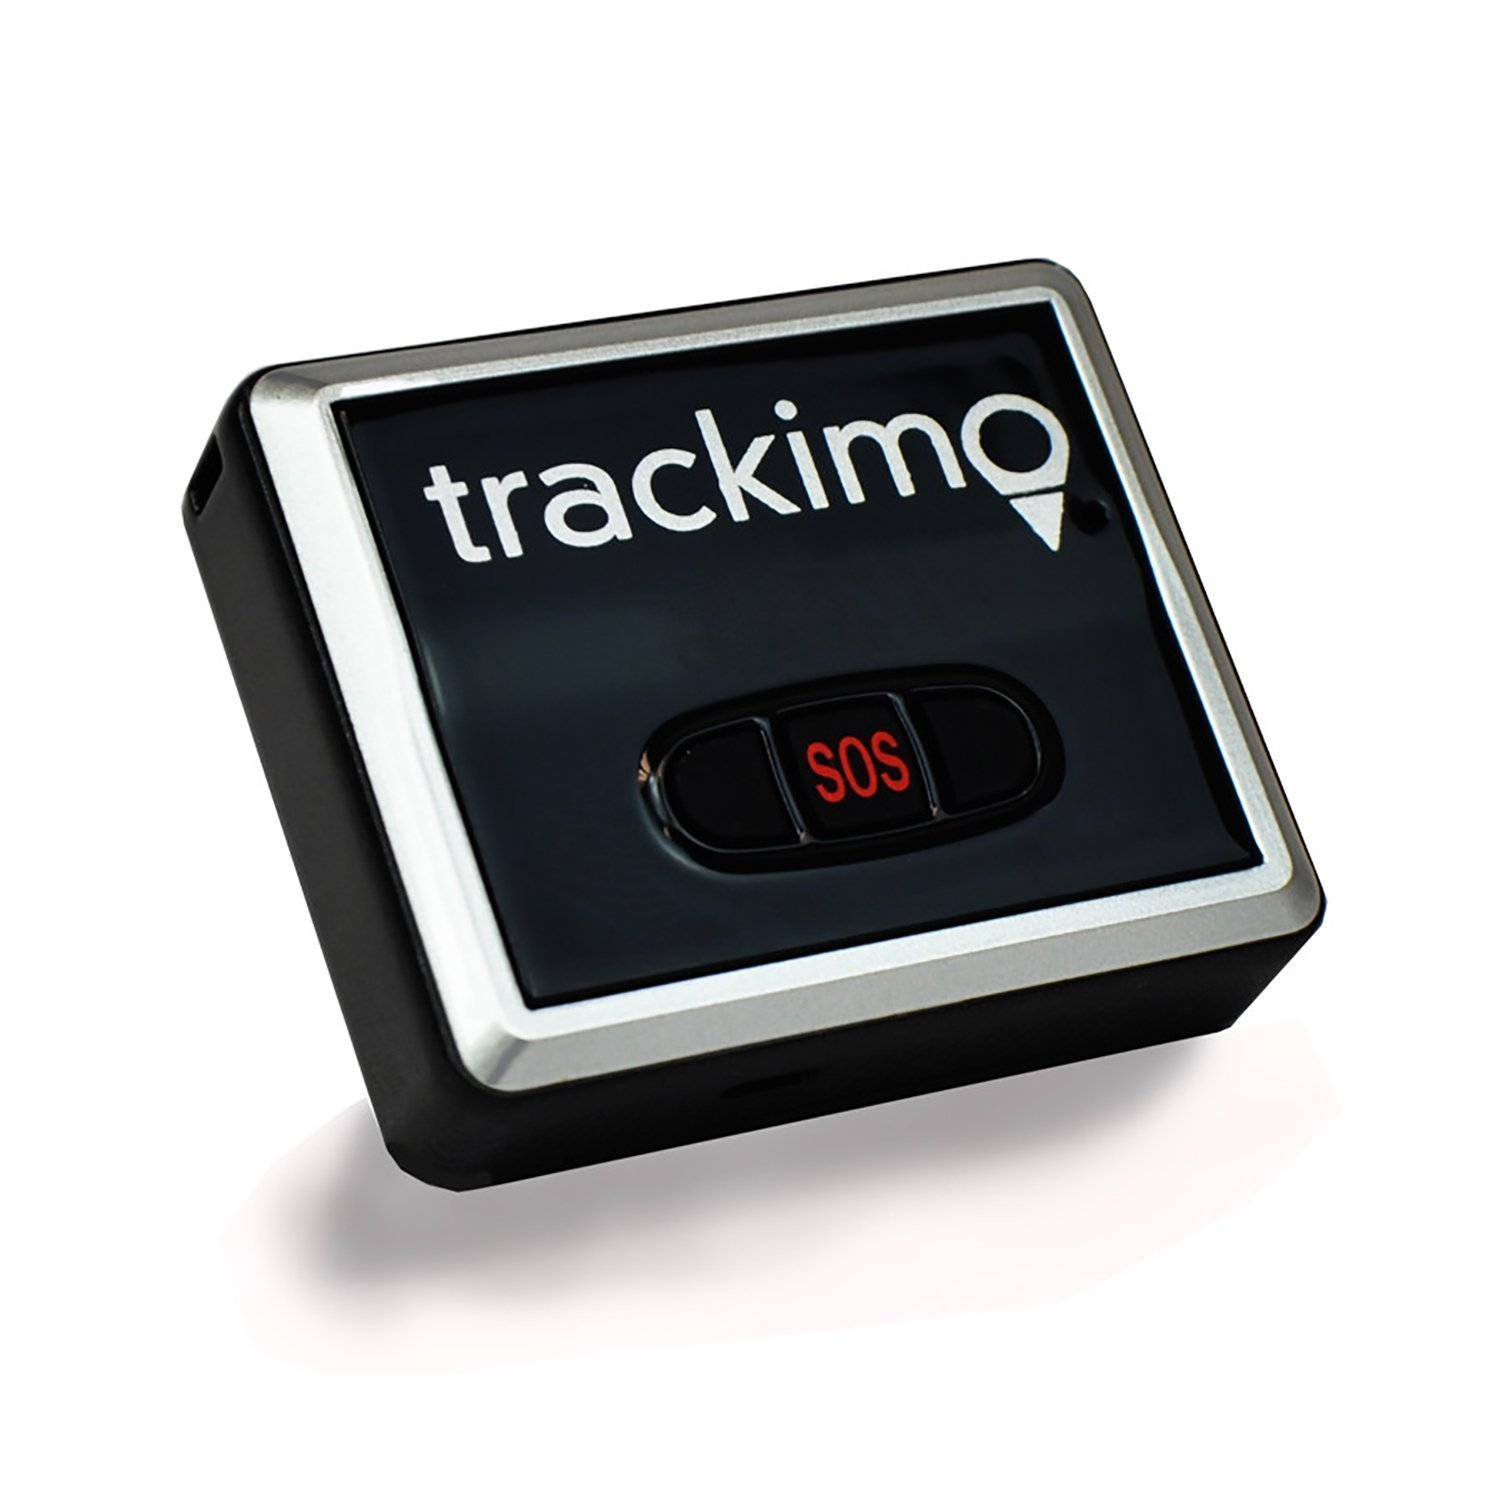 Gps Tracker Trackimo Trkm002 Gps Tracker And Locator Reviews Coupons And Deals